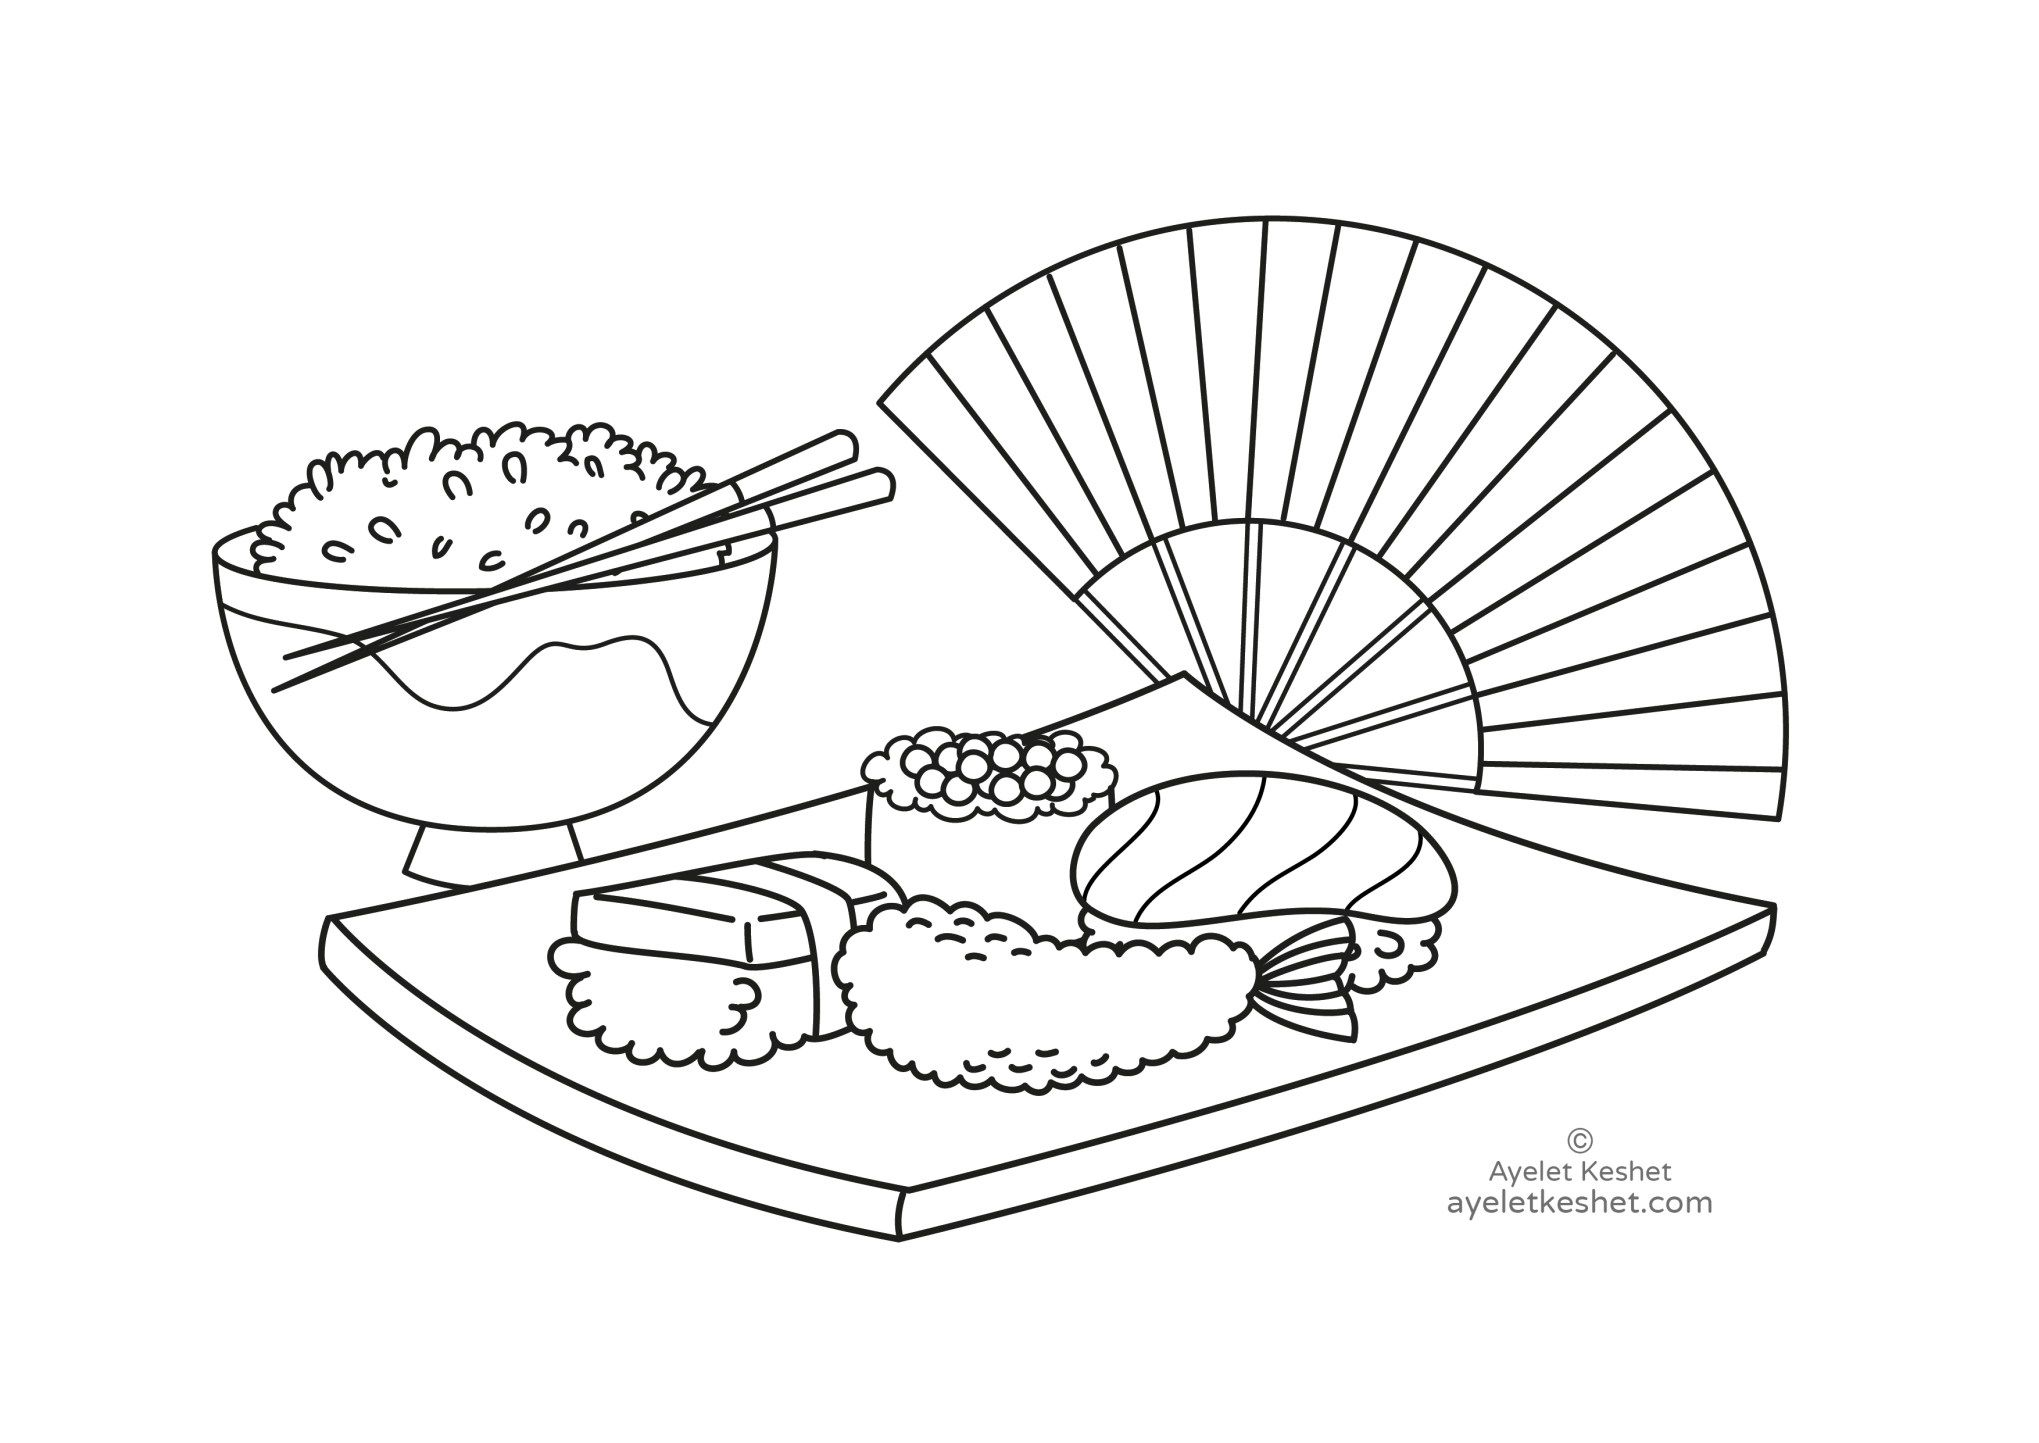 Free Coloring Pages About Japan For Kids Ayelet Keshet Japan For Kids Free Kids Coloring Pages Coloring Pages